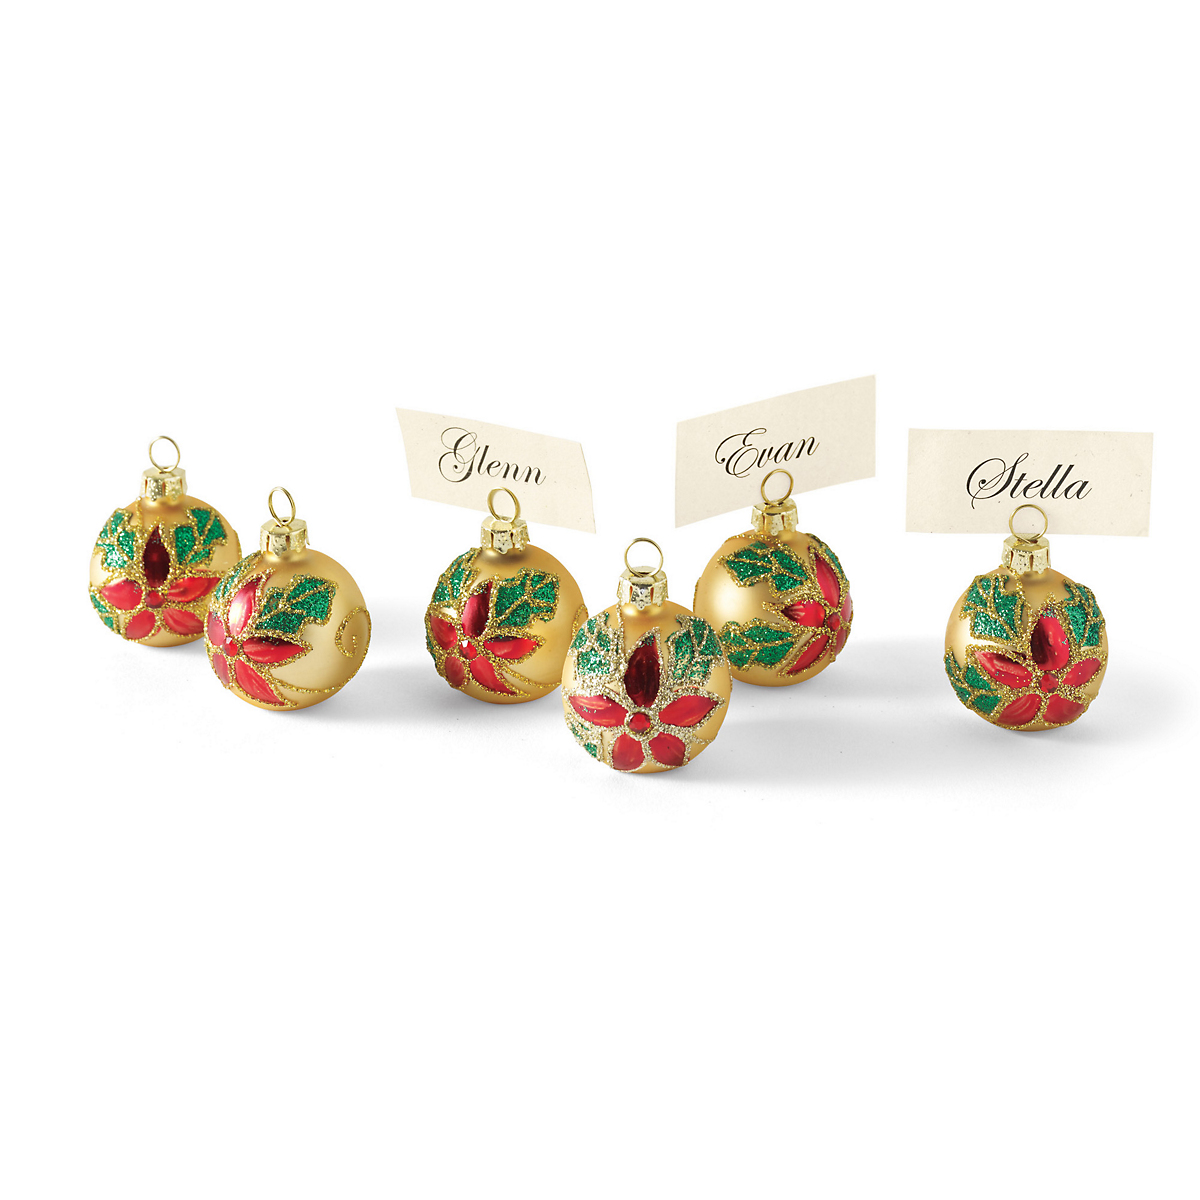 Holly Ornament Placecard Holders